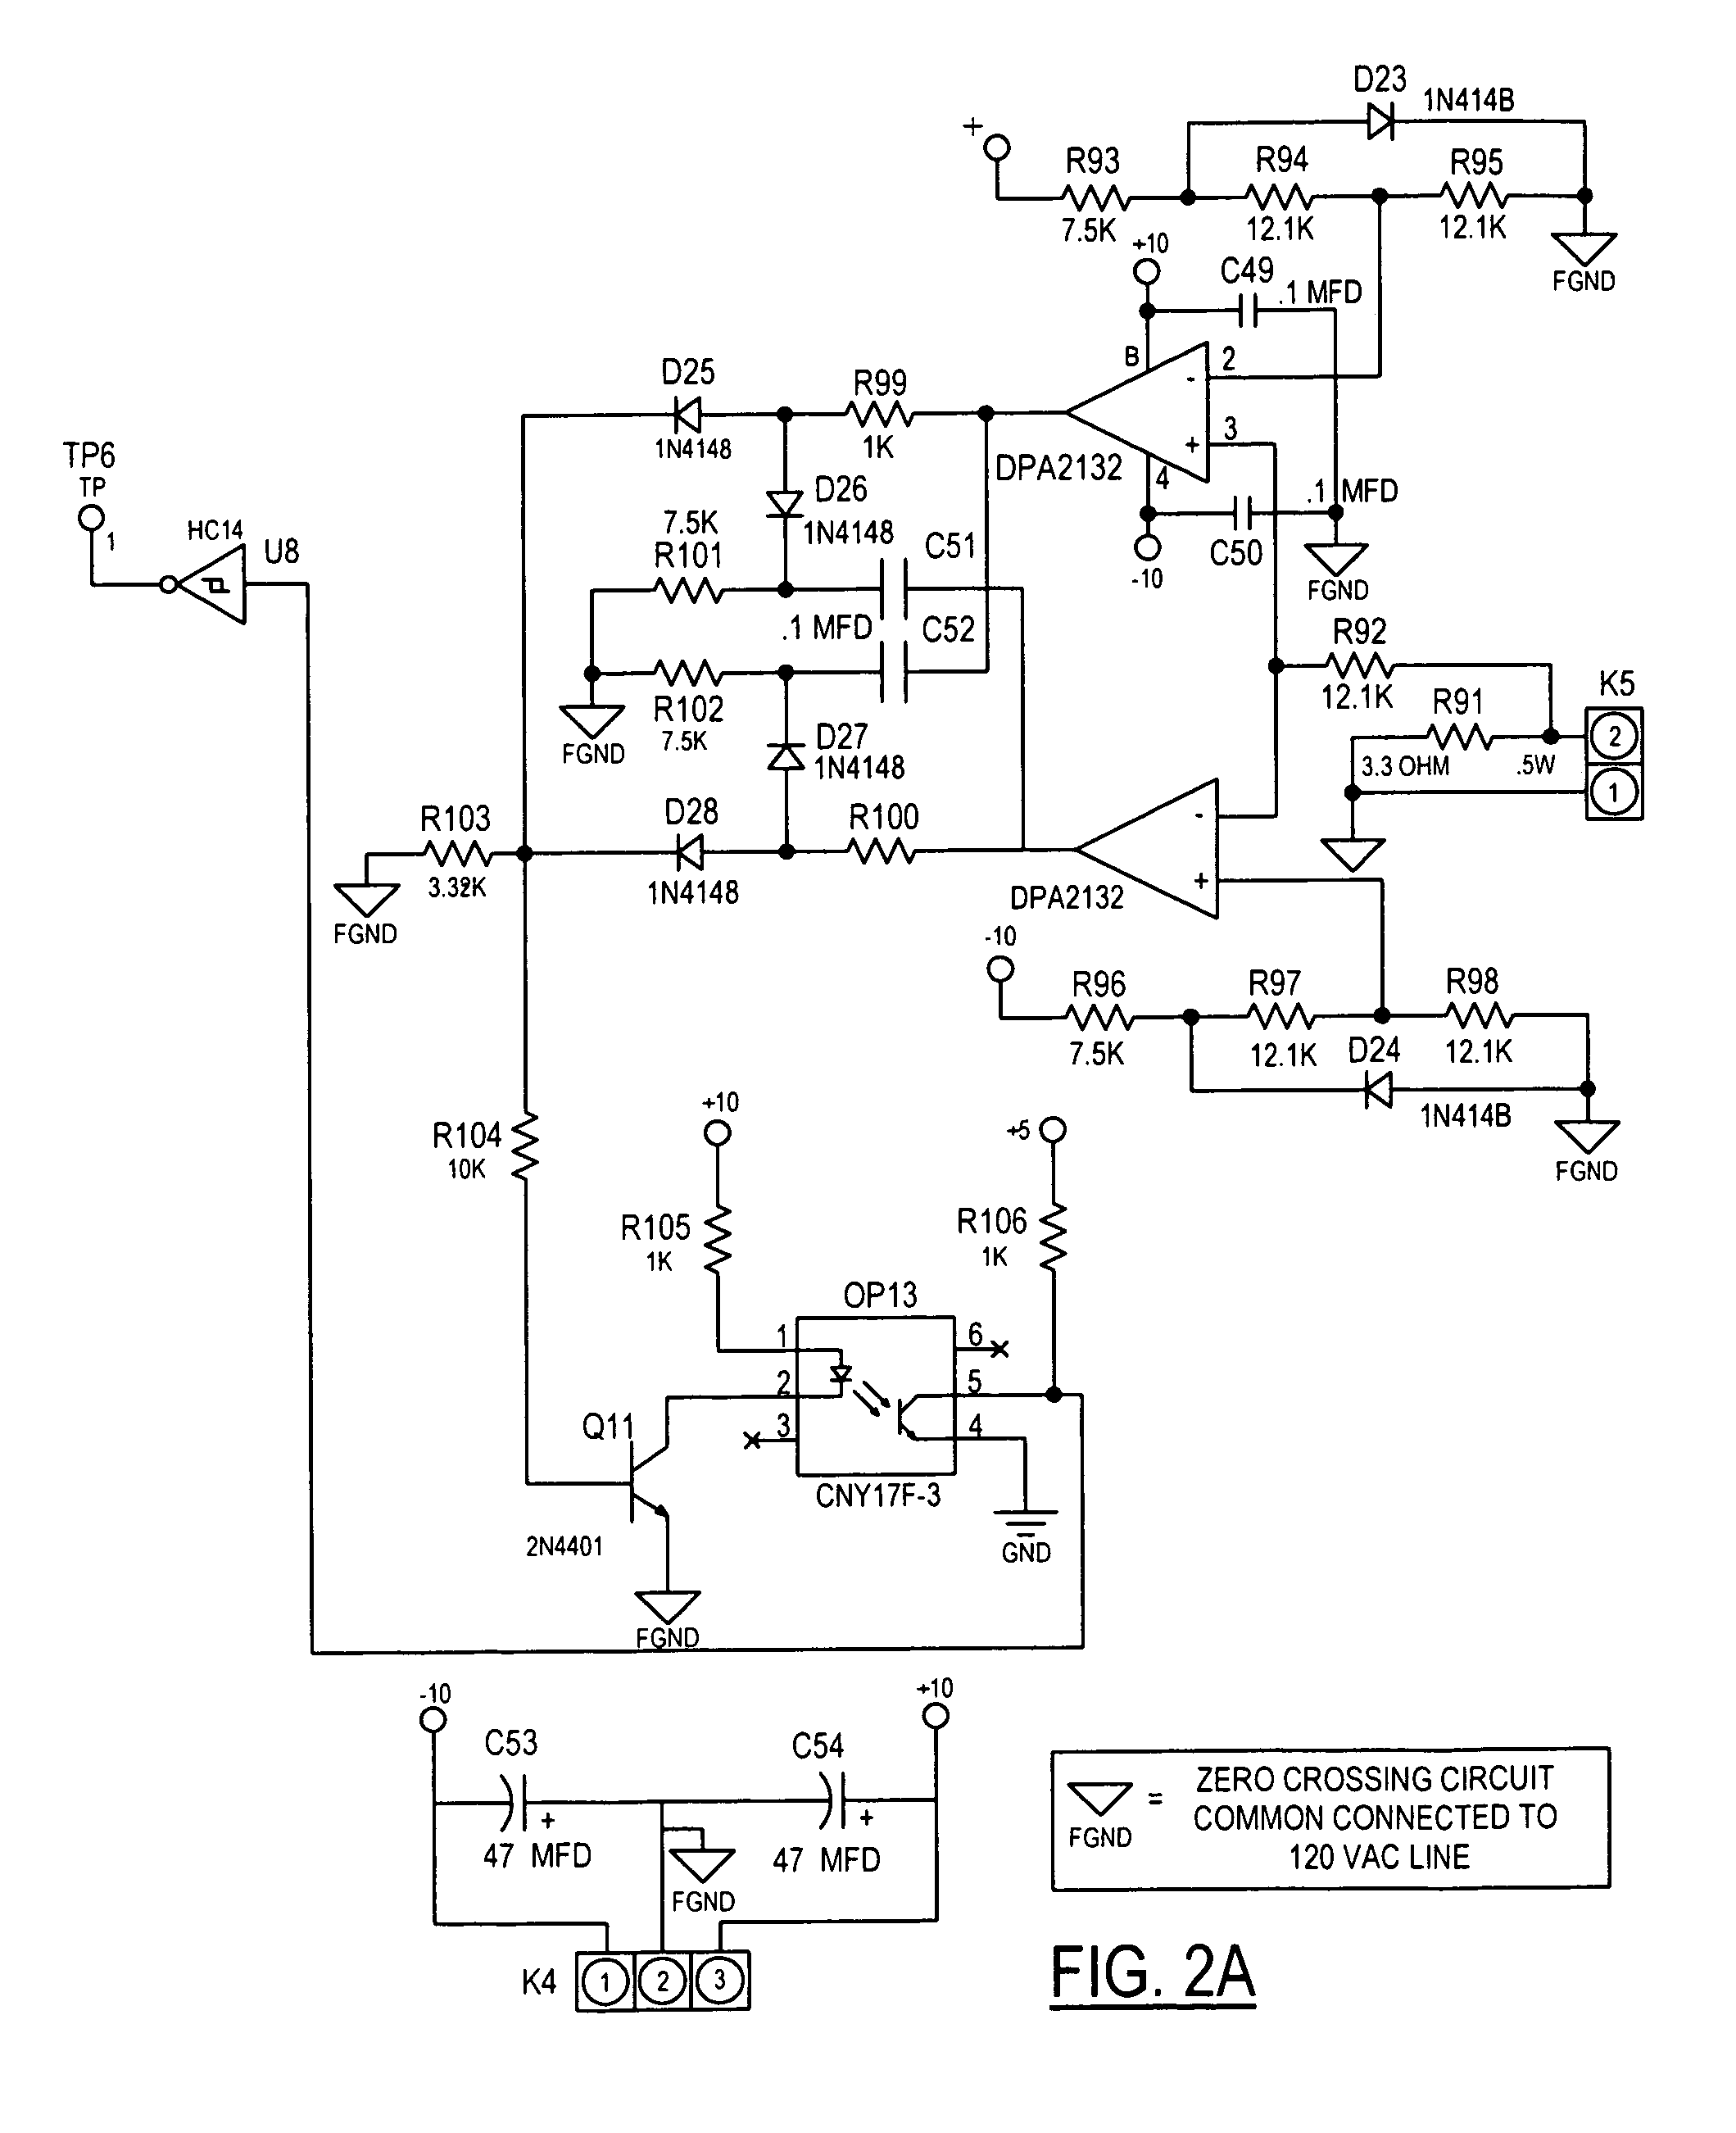 Runway Lighting System Diagram Airport Patente Us7088263 Approach And Method Markings Distances